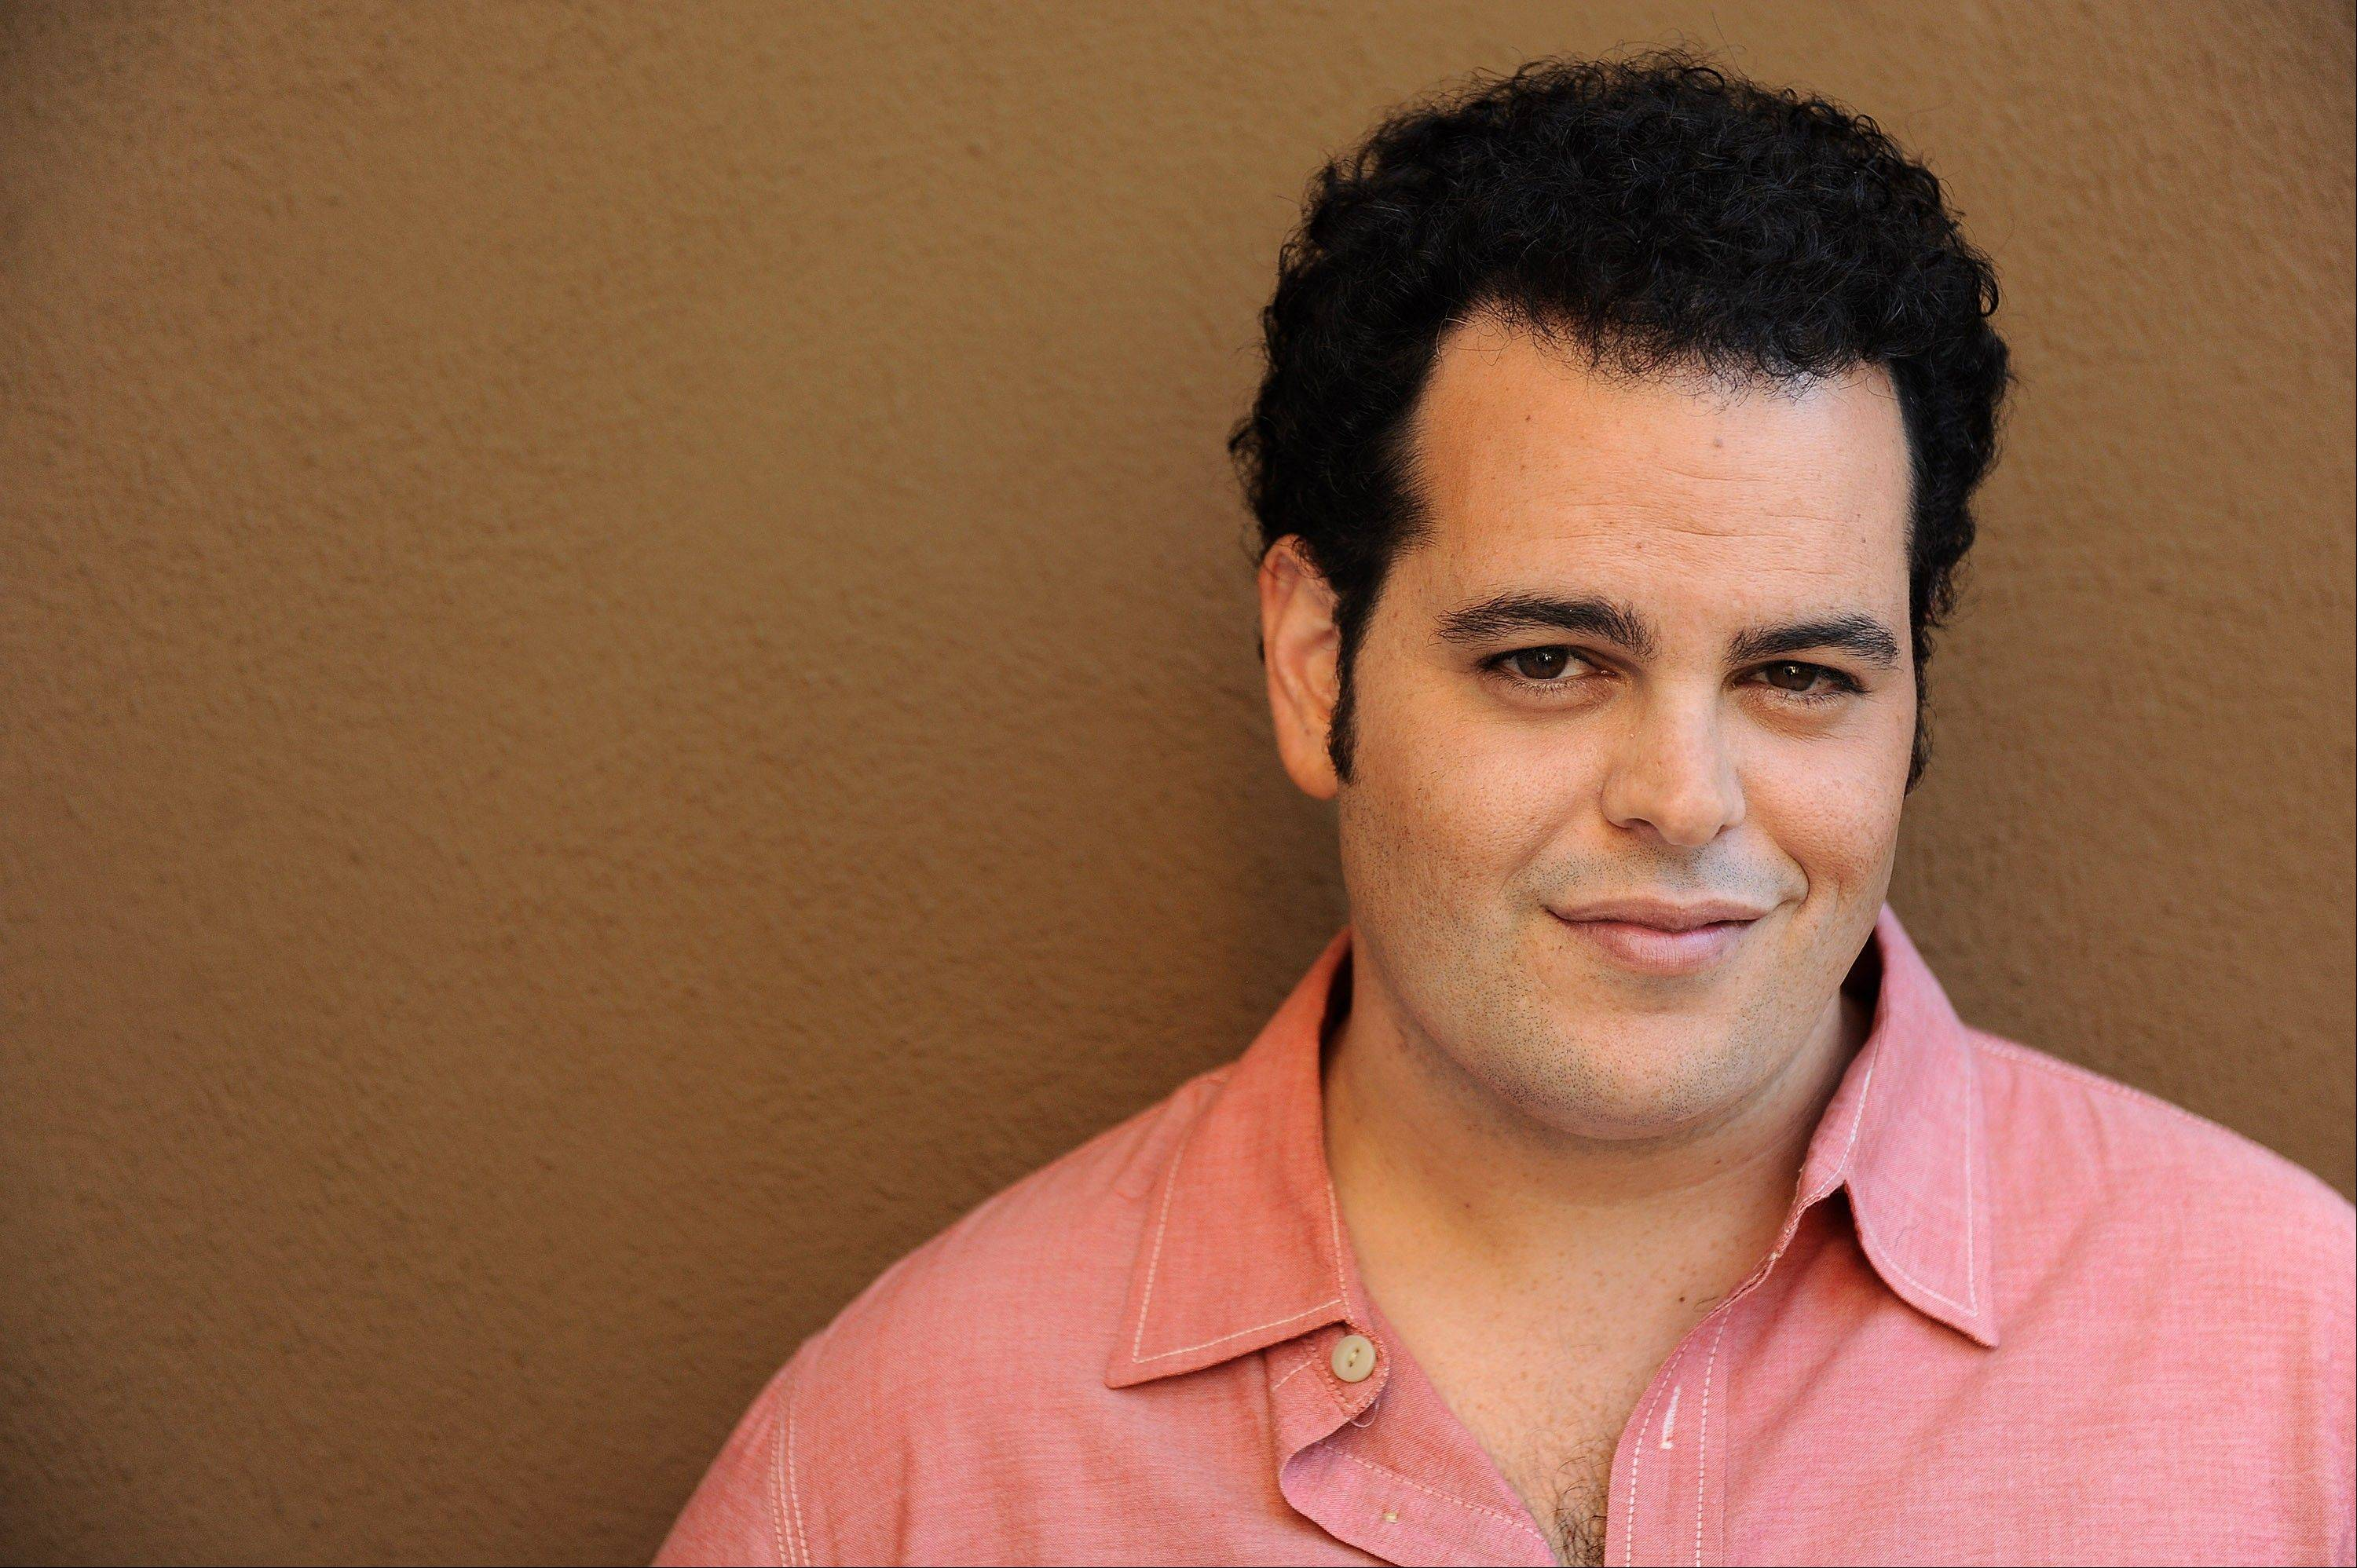 FILE - In this Monday, Sept. 16, 2013 file photo, Josh Gad poses for a portrait at the Four Seasons Hotel, in Los Angeles. Gad has a spate of acting and writing projects in the works, including an upcoming TV show with Billy Crystal and starring role in a Sam Kinison biopic, plus �Thanks for Sharing,� in theaters Friday, Sept. 20, 2013. (Photo by Jordan Strauss/Invision/AP, File)